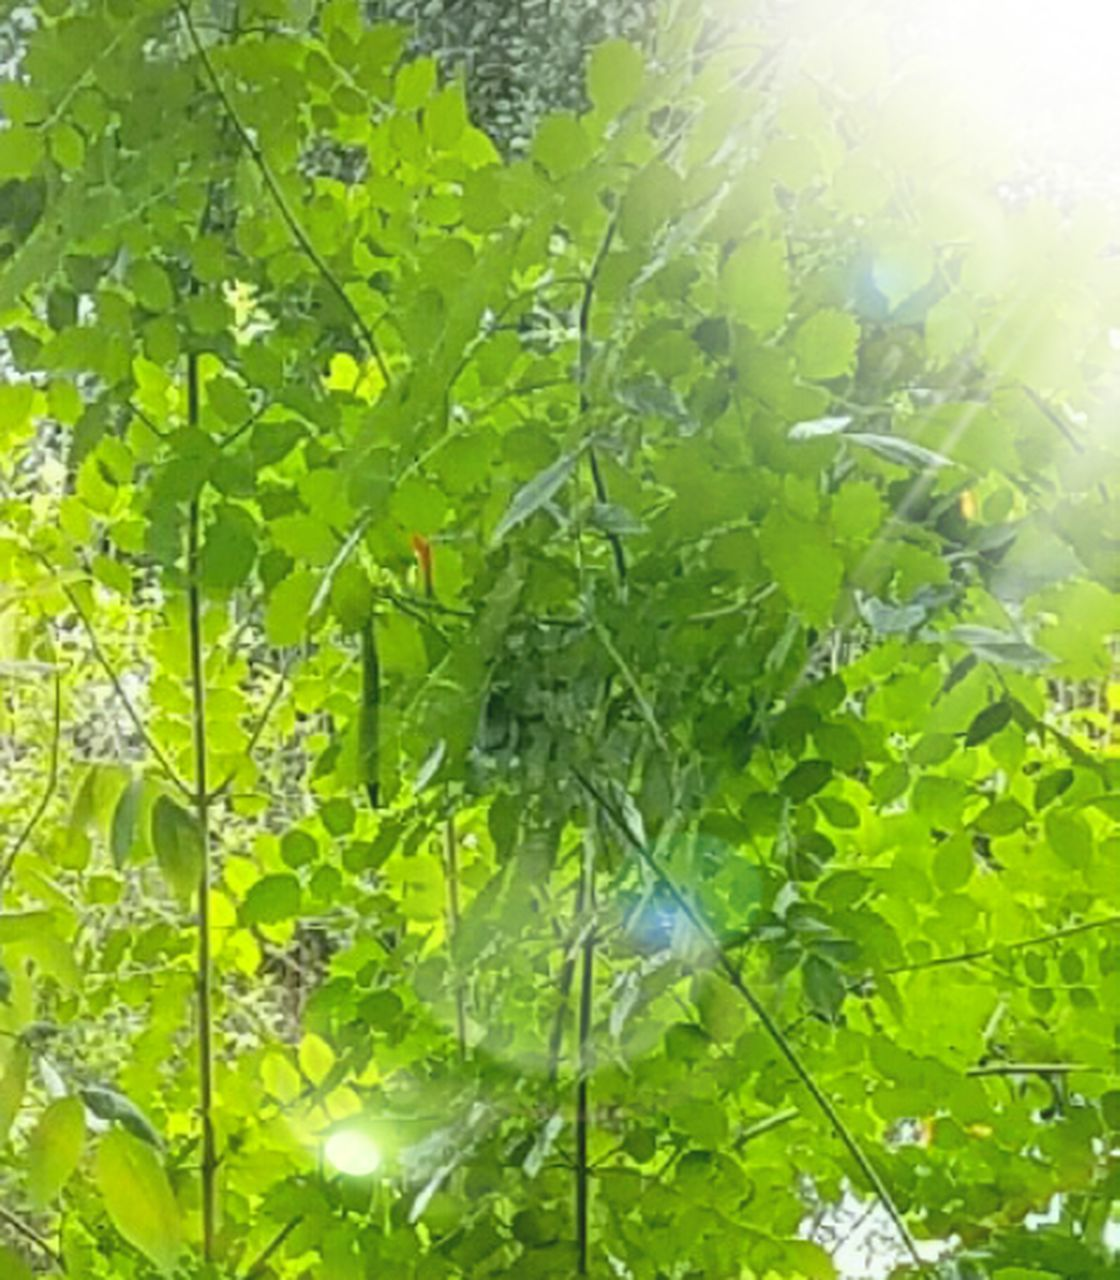 leaf, green color, growth, plant, nature, freshness, sunlight, no people, backgrounds, close-up, day, outdoors, beauty in nature, food